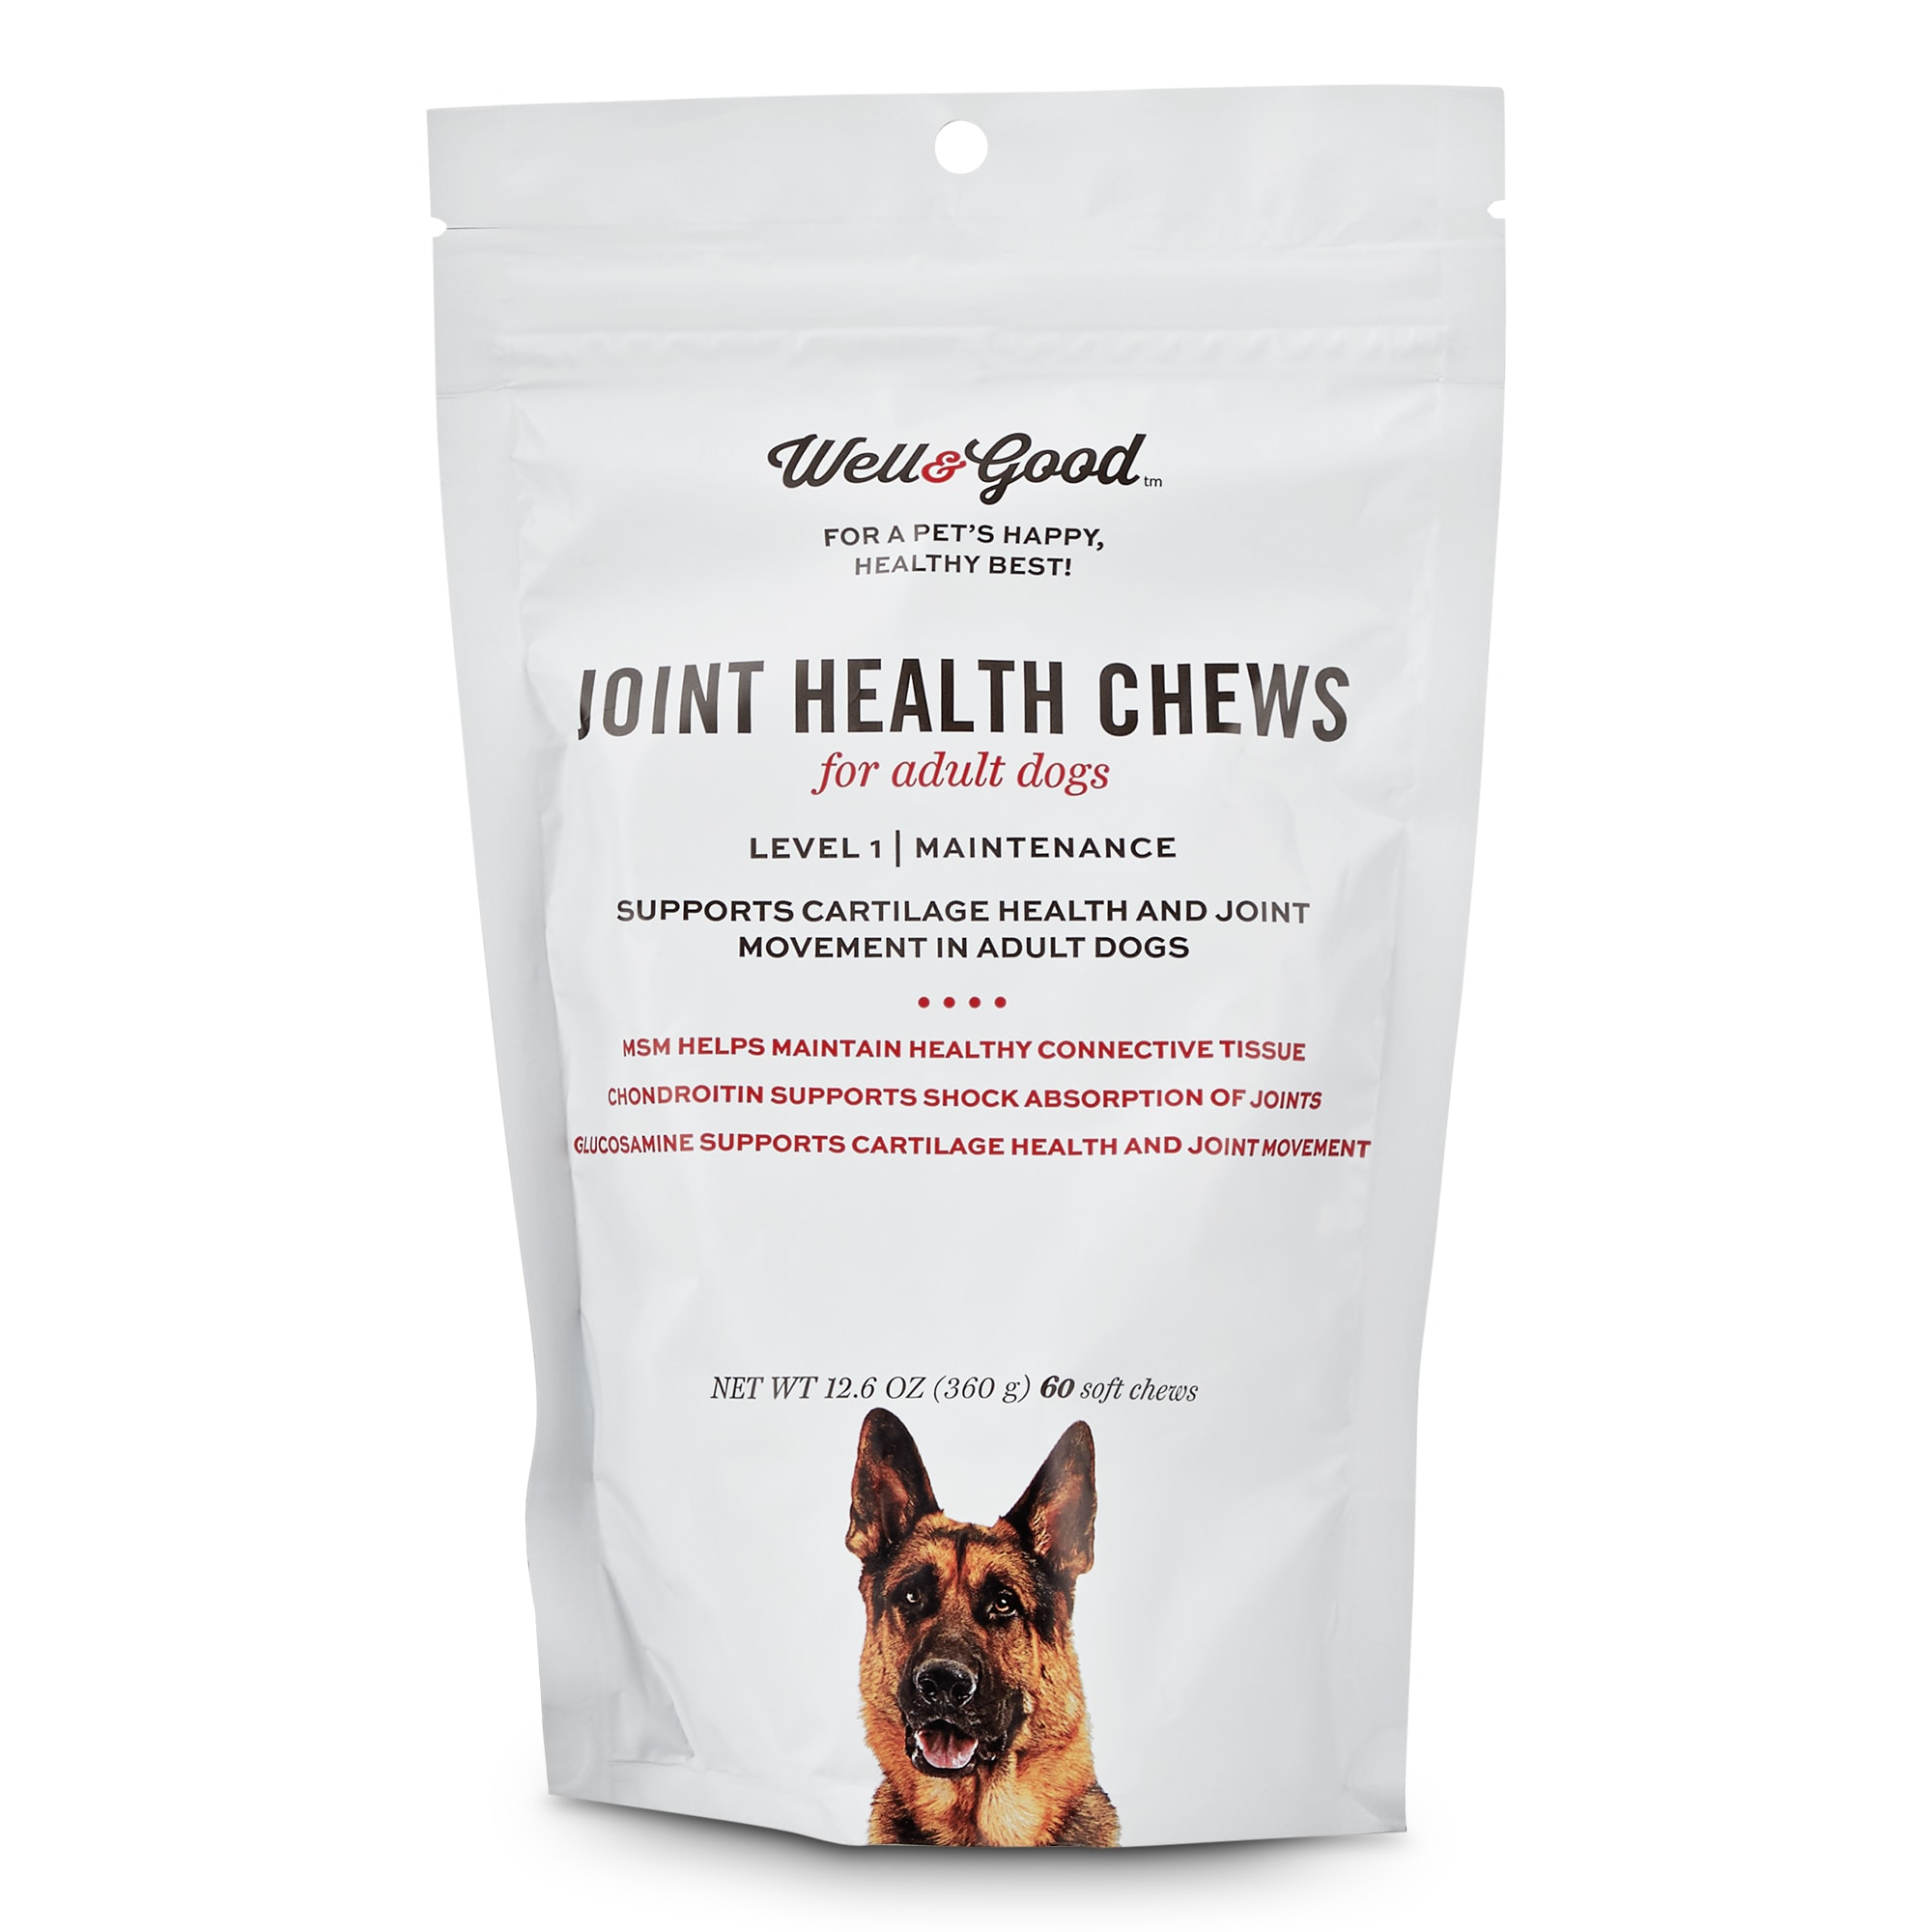 Well & Good Adult Level 1 Dog Joint Health Chews, 12.6 oz., Count of 60, 4.2 IN